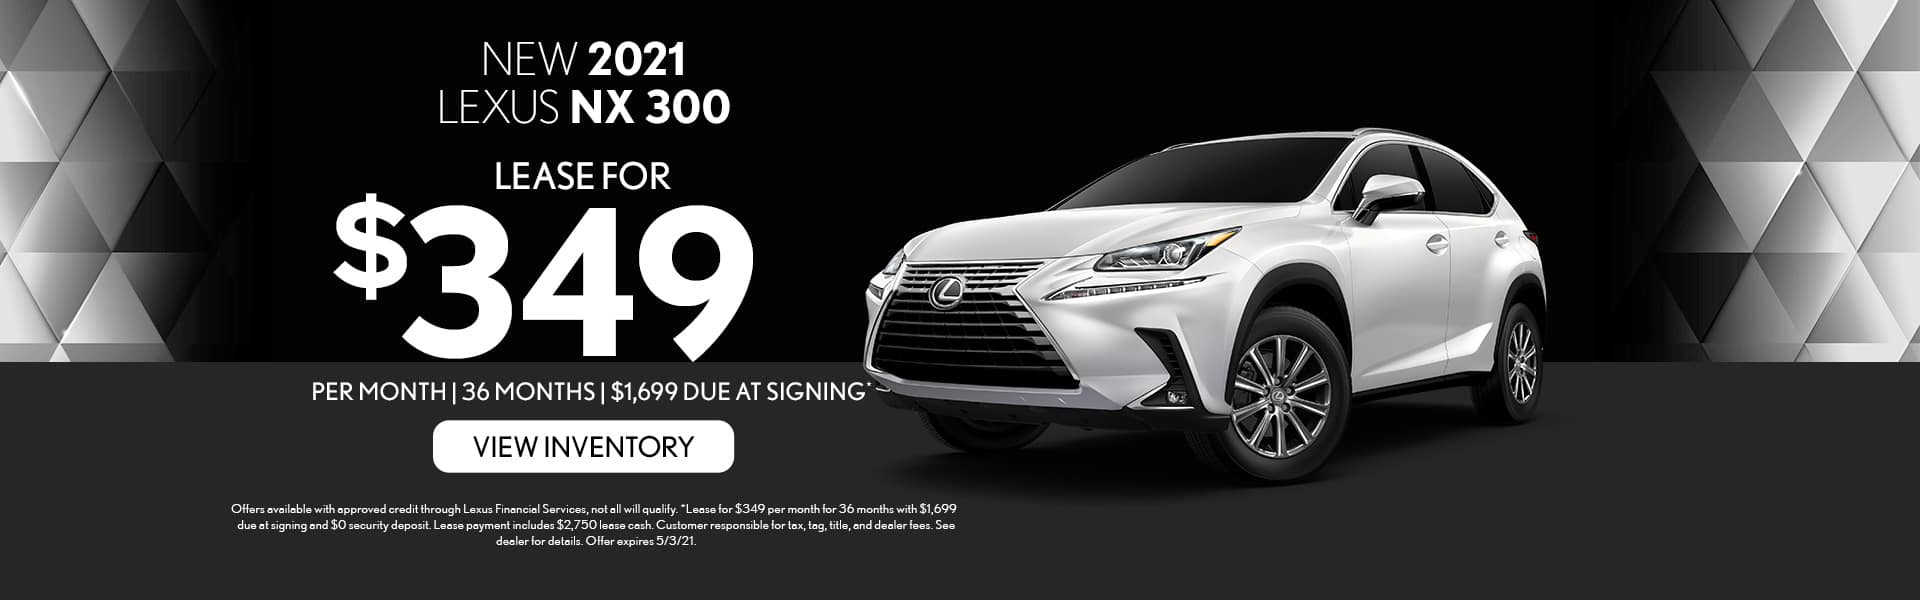 2021 Lexus NX 300 for lease in Mobile, AL